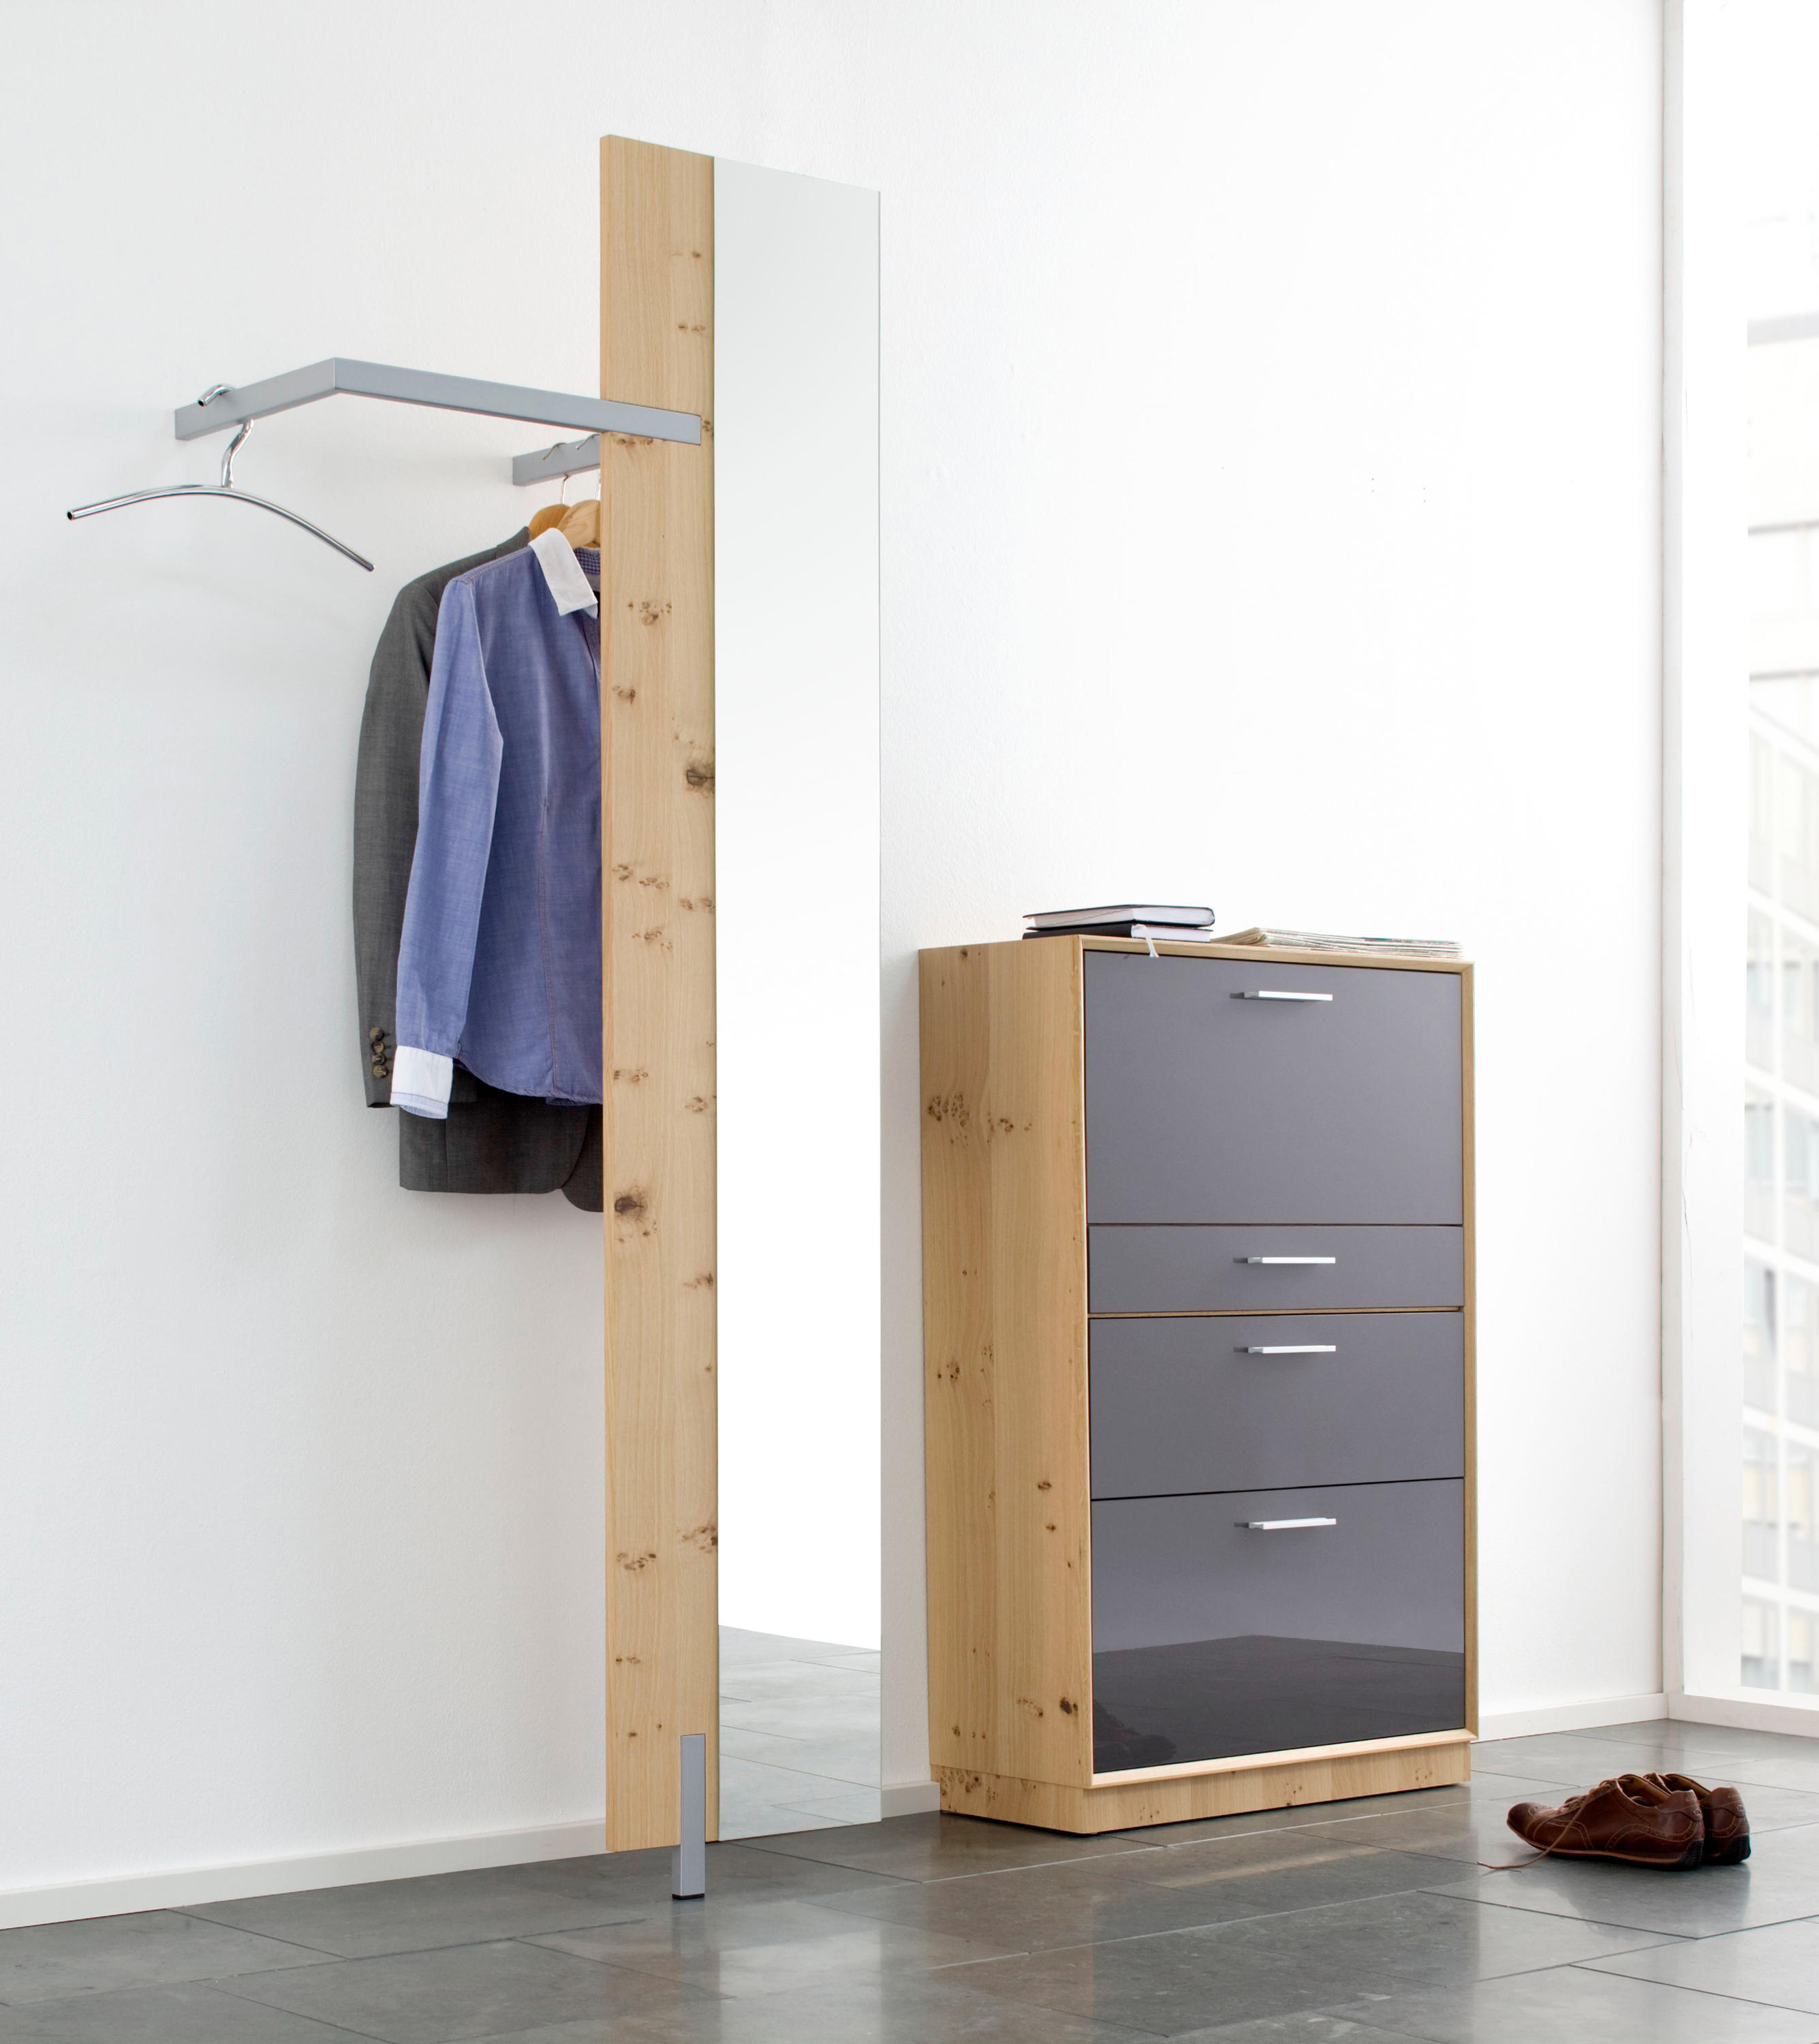 Modo built in wardrobes from sudbrock architonic for City meuble catalogue